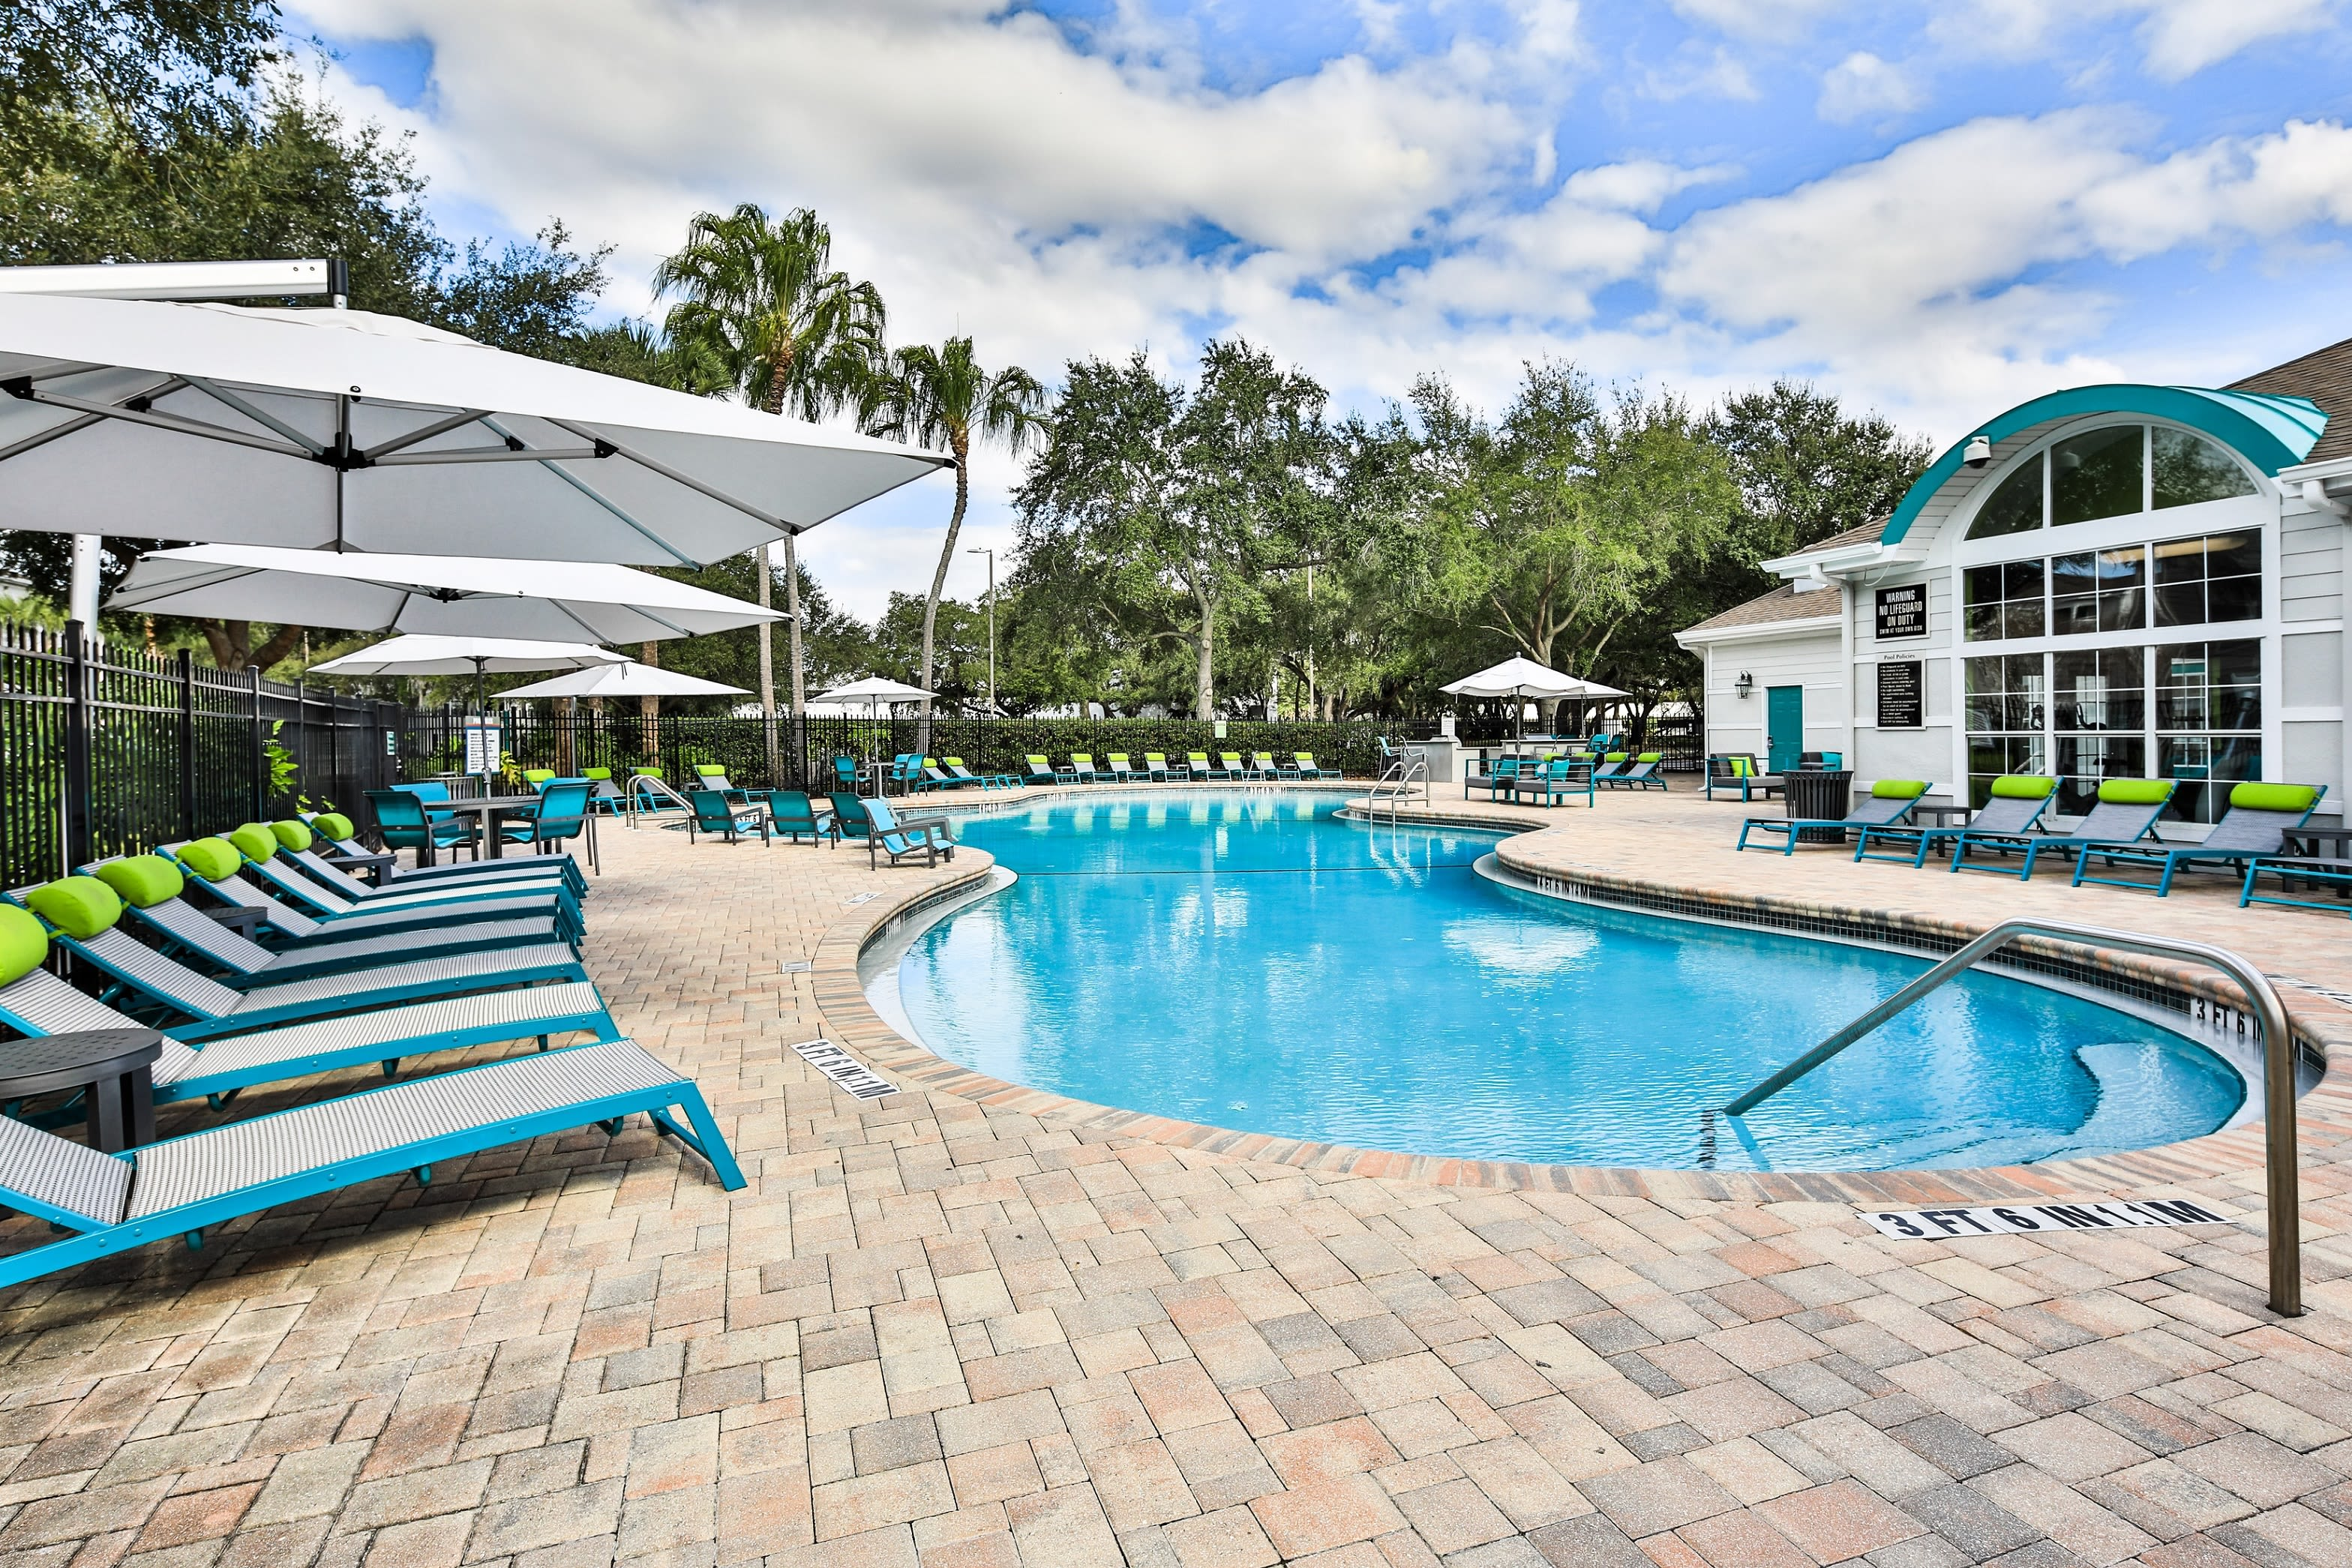 Outdoor pool with lounge chairs and clubhouse at Amira at Westly in Tampa, Florida